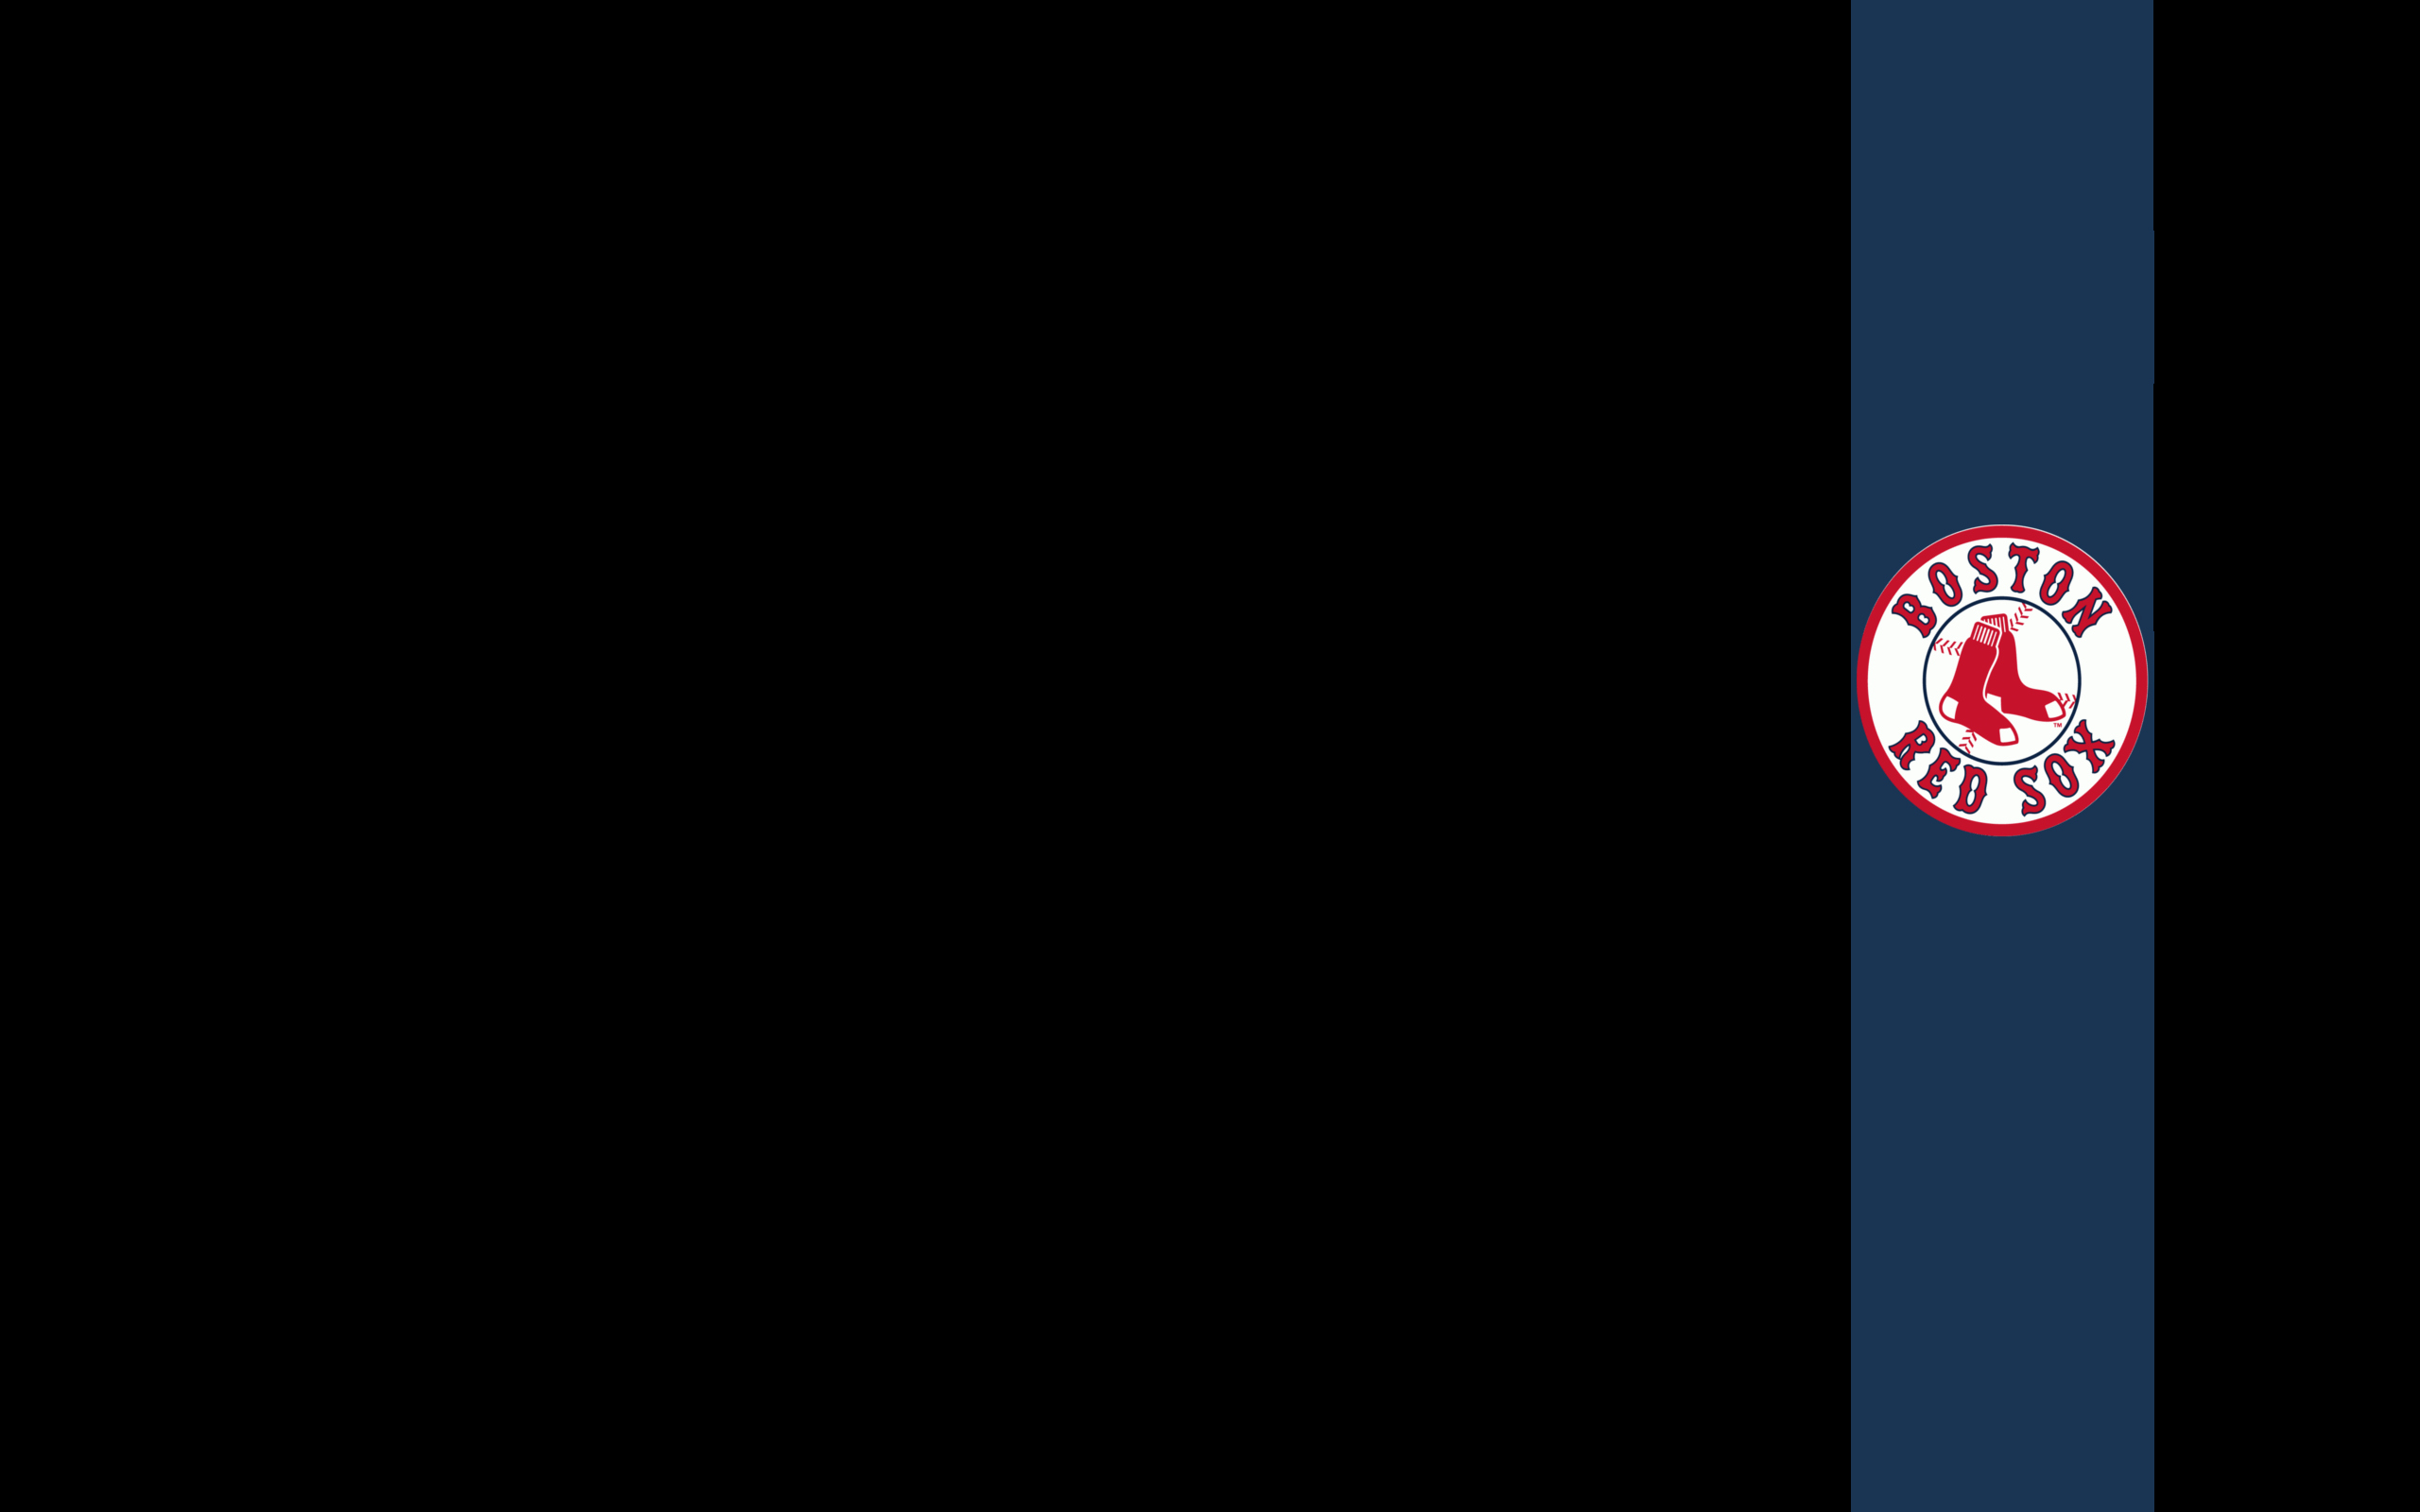 Boston Red Sox Logo Wallpapers 2560x1600